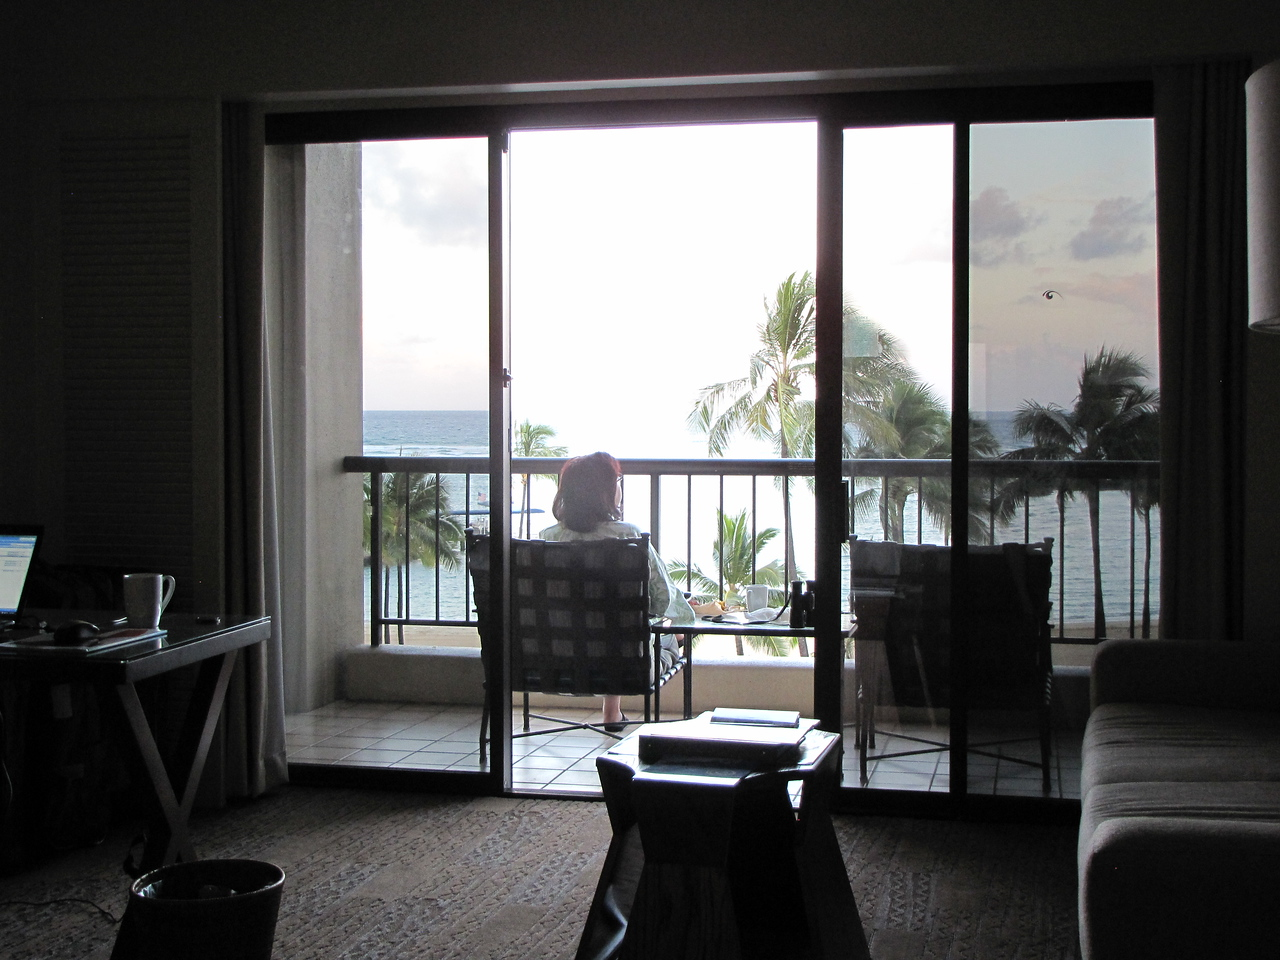 And enjoyed breakfast on the lanai.